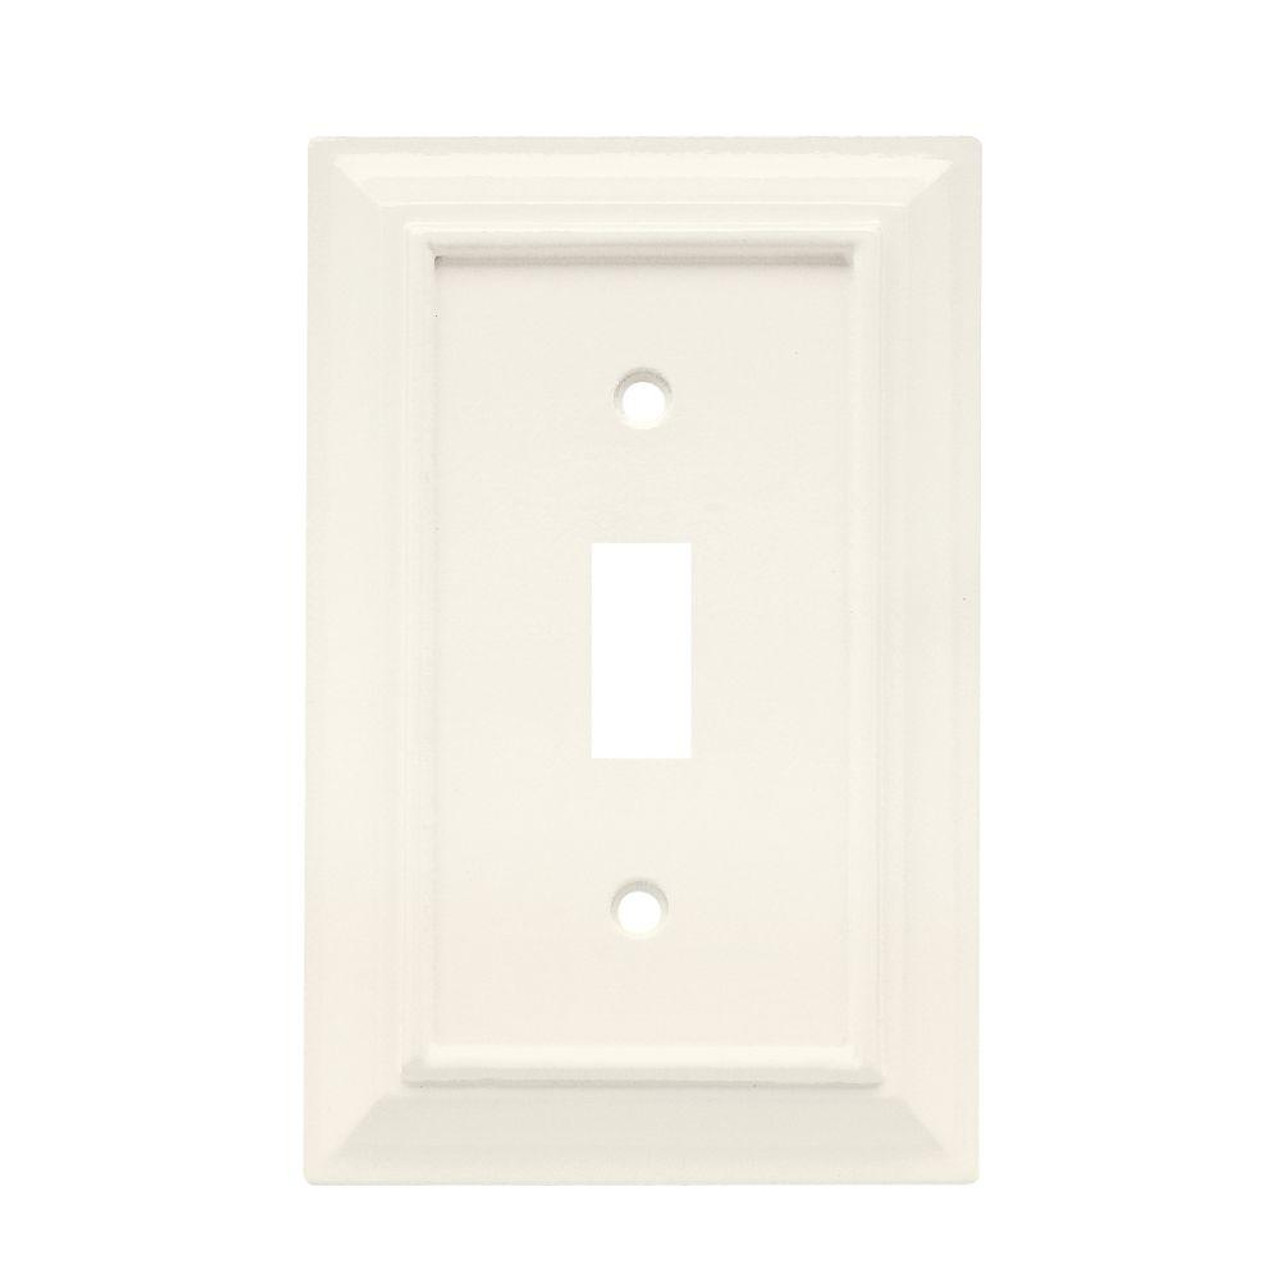 Almond Architect Double Switch Wall Cover Plate W10763-LAL Lt